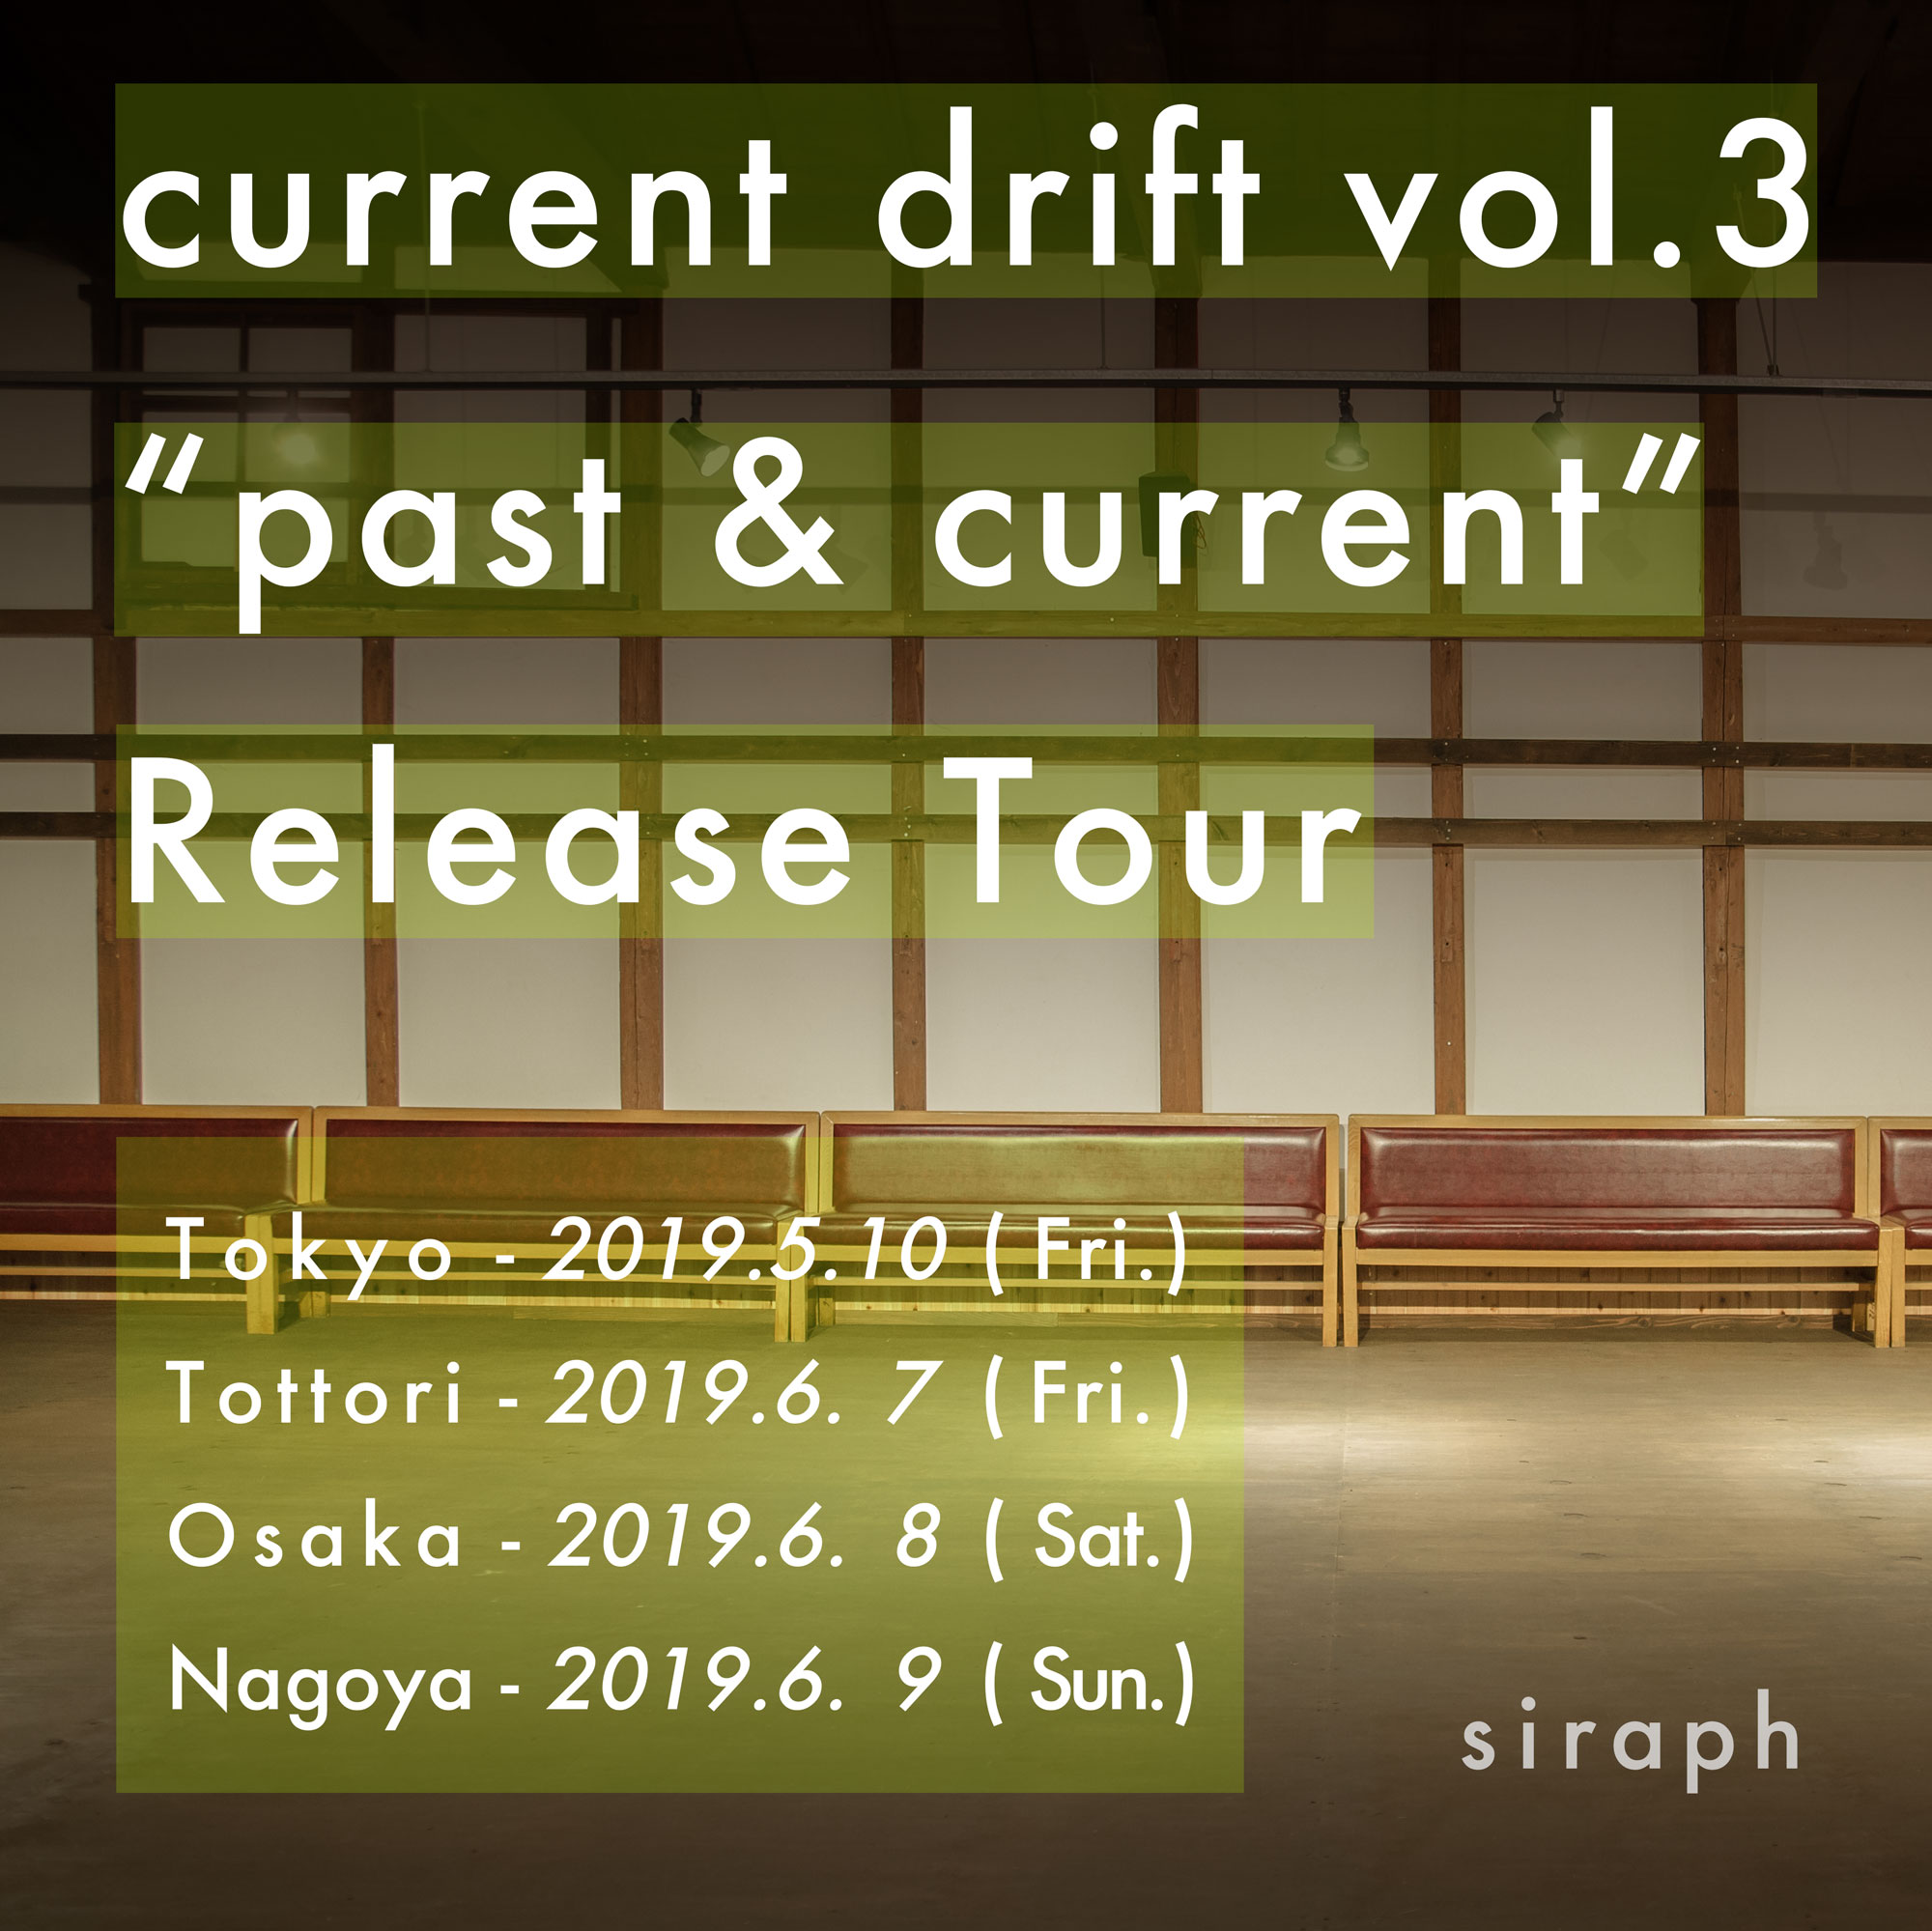 "current drift vol.3 - ""past & current"" Release Tour 名古屋編 -"